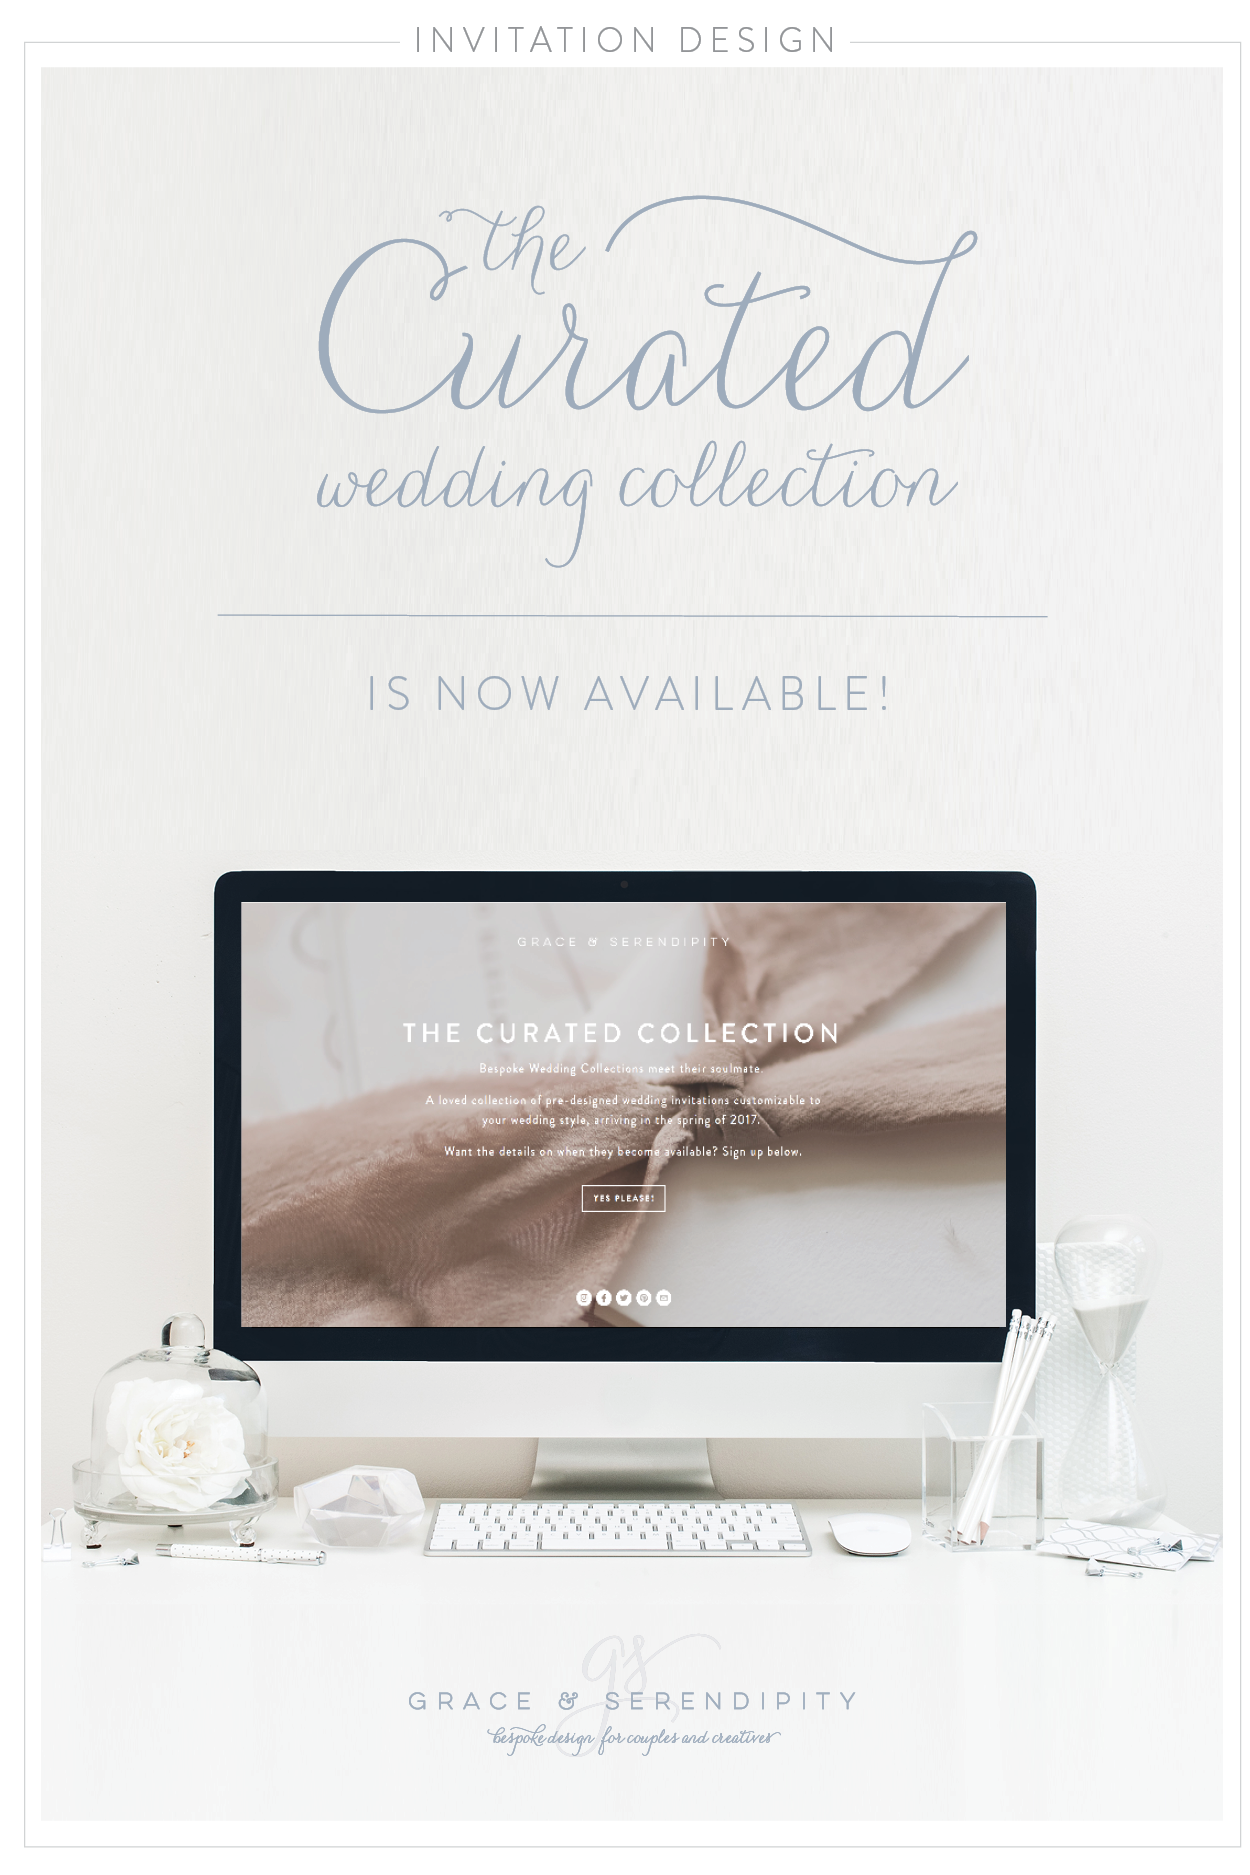 Curated and Semi-Custom Wedding Invitation Design by Grace and Serendipity